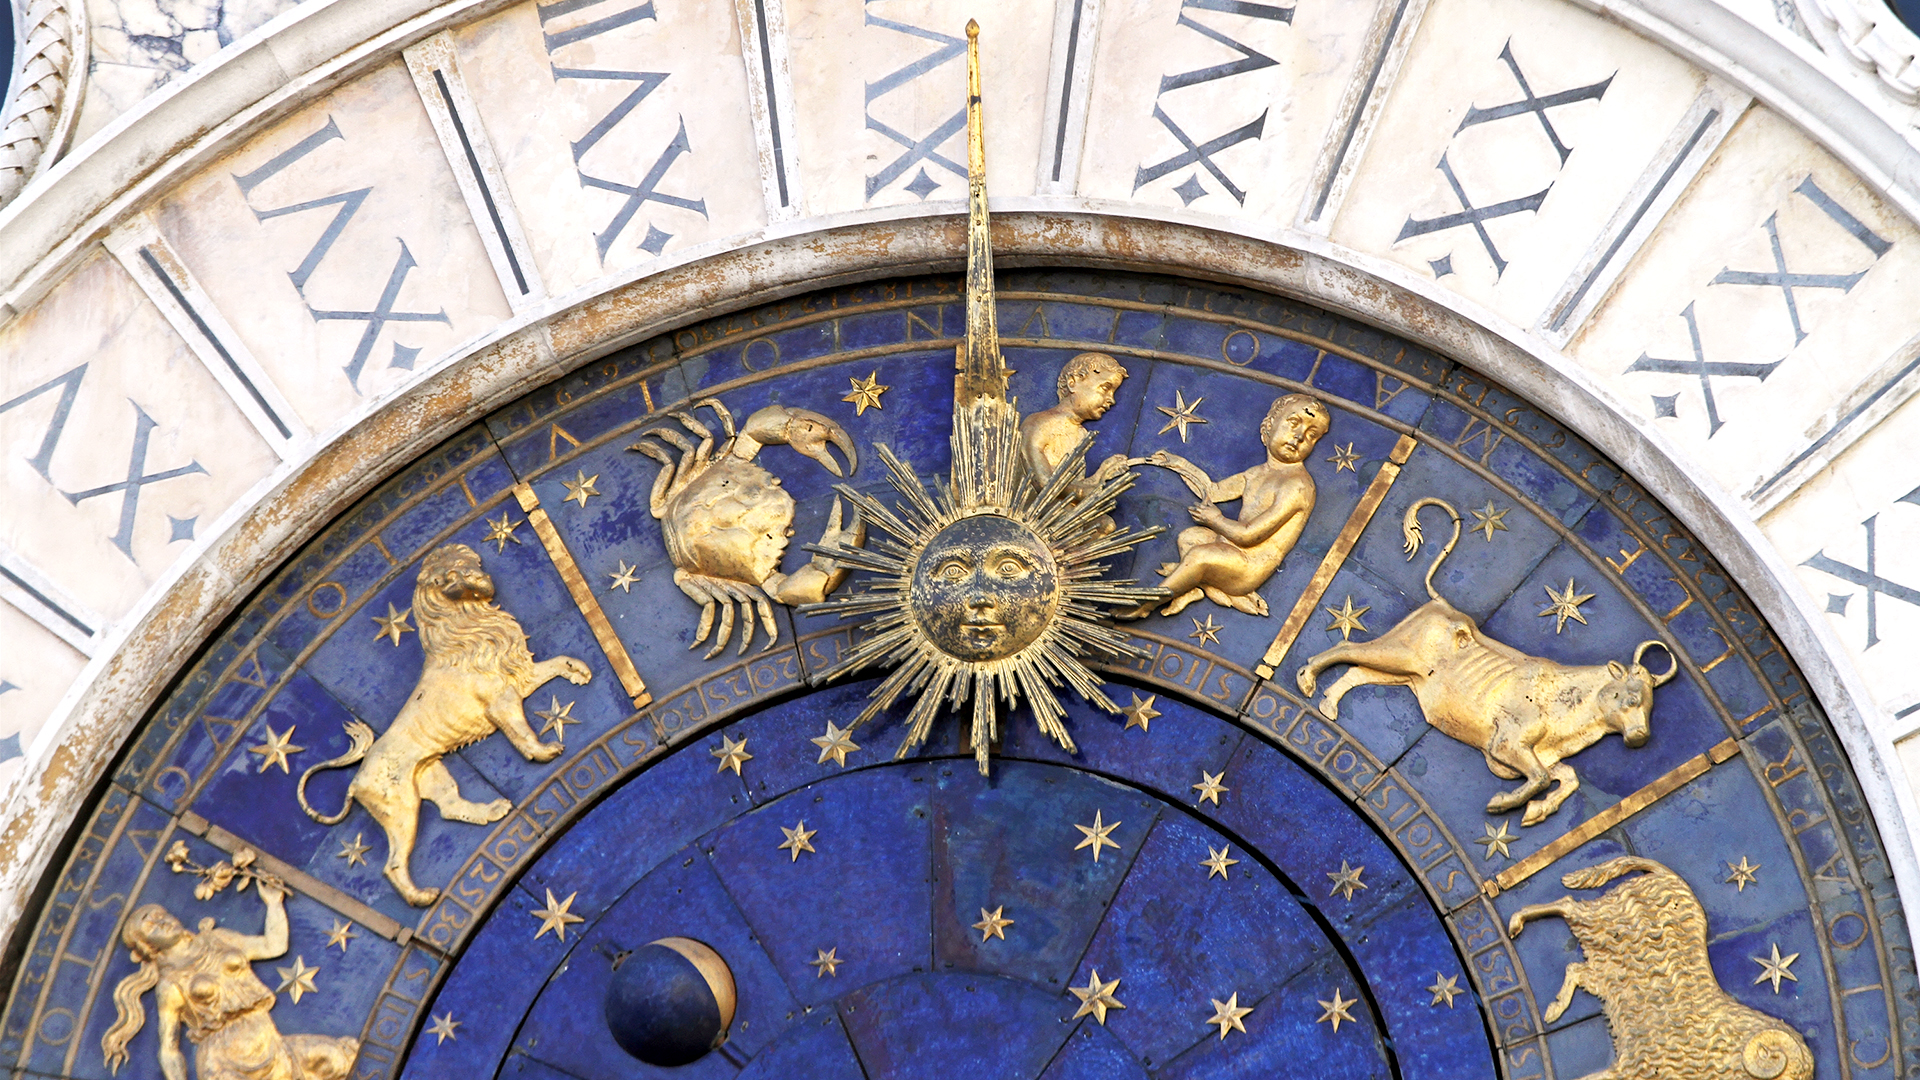 The New Astrological Calendar New Zodiac Sign Dates Earth Rotation Changes Time The Zodiac Has Changed Whats Your New Astrological